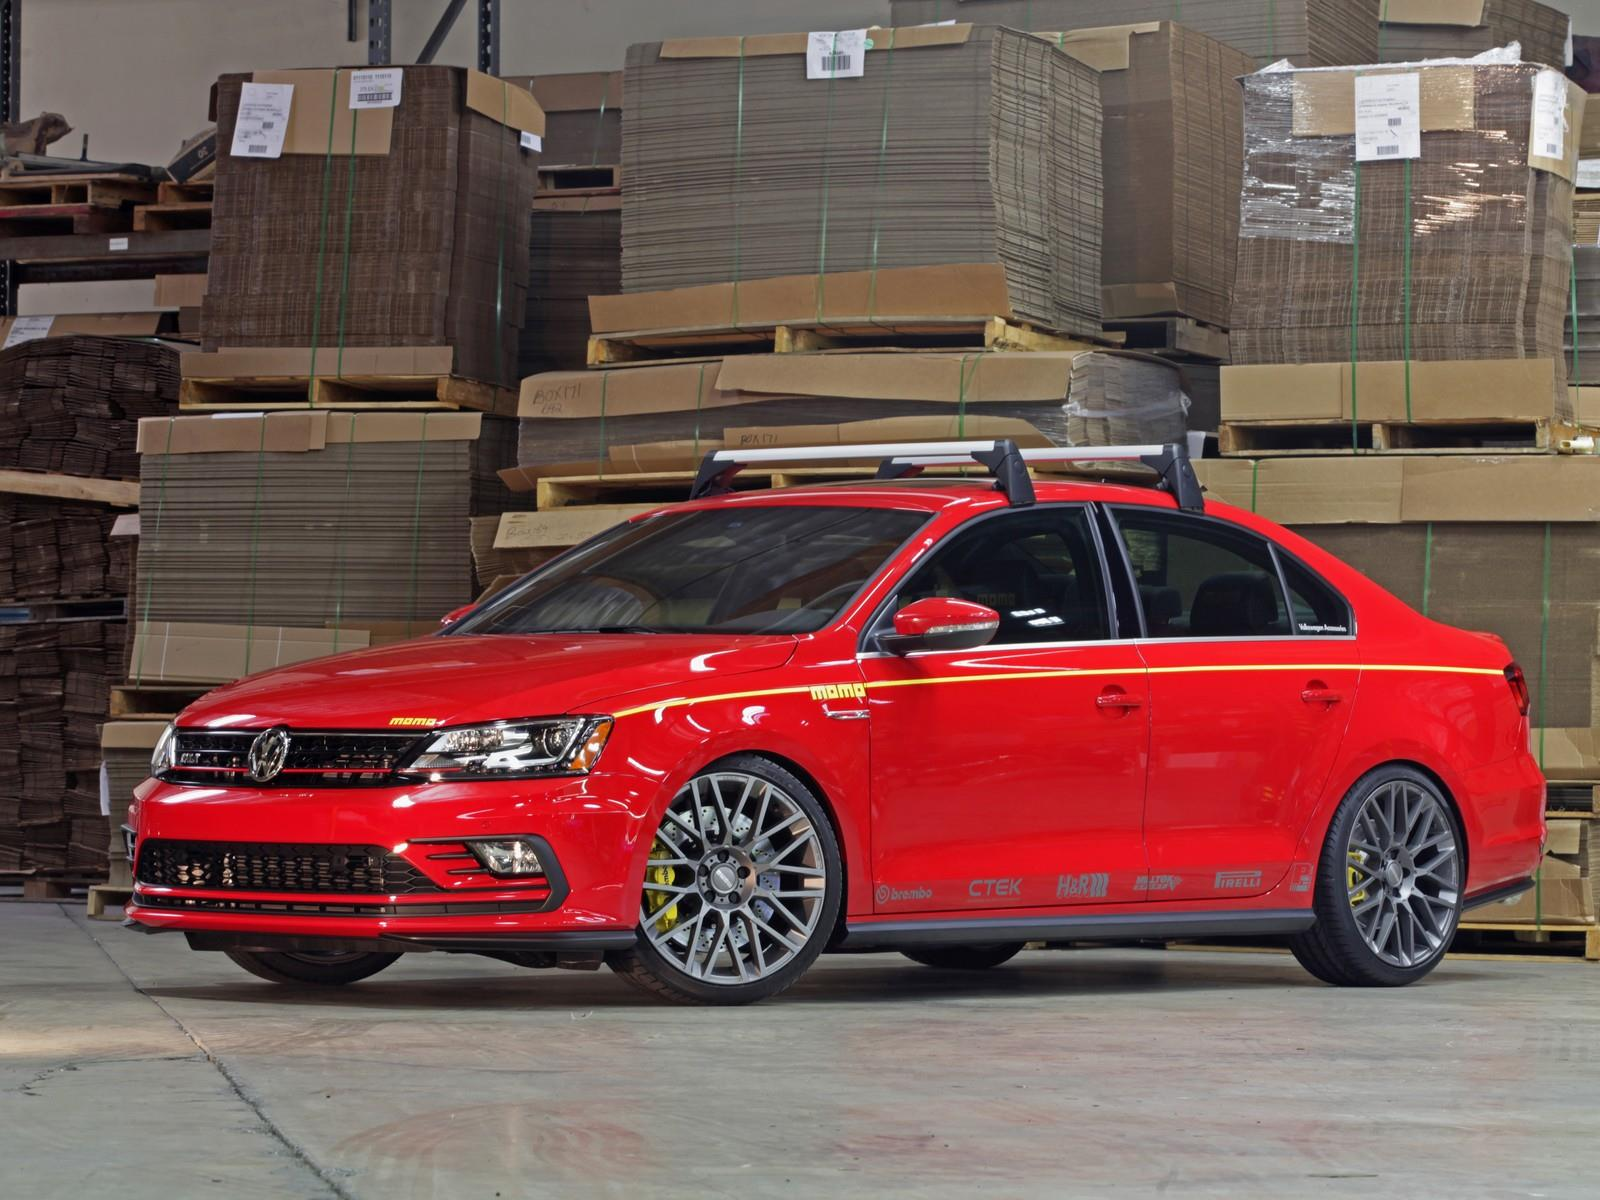 182227364093 together with Mytoyotaguys further Volkswagen Jetta Gli Momo Edition 2016 Un Sedan De Alto Calibre likewise Watch also Toyota Taillights. on toyota corolla aftermarket parts